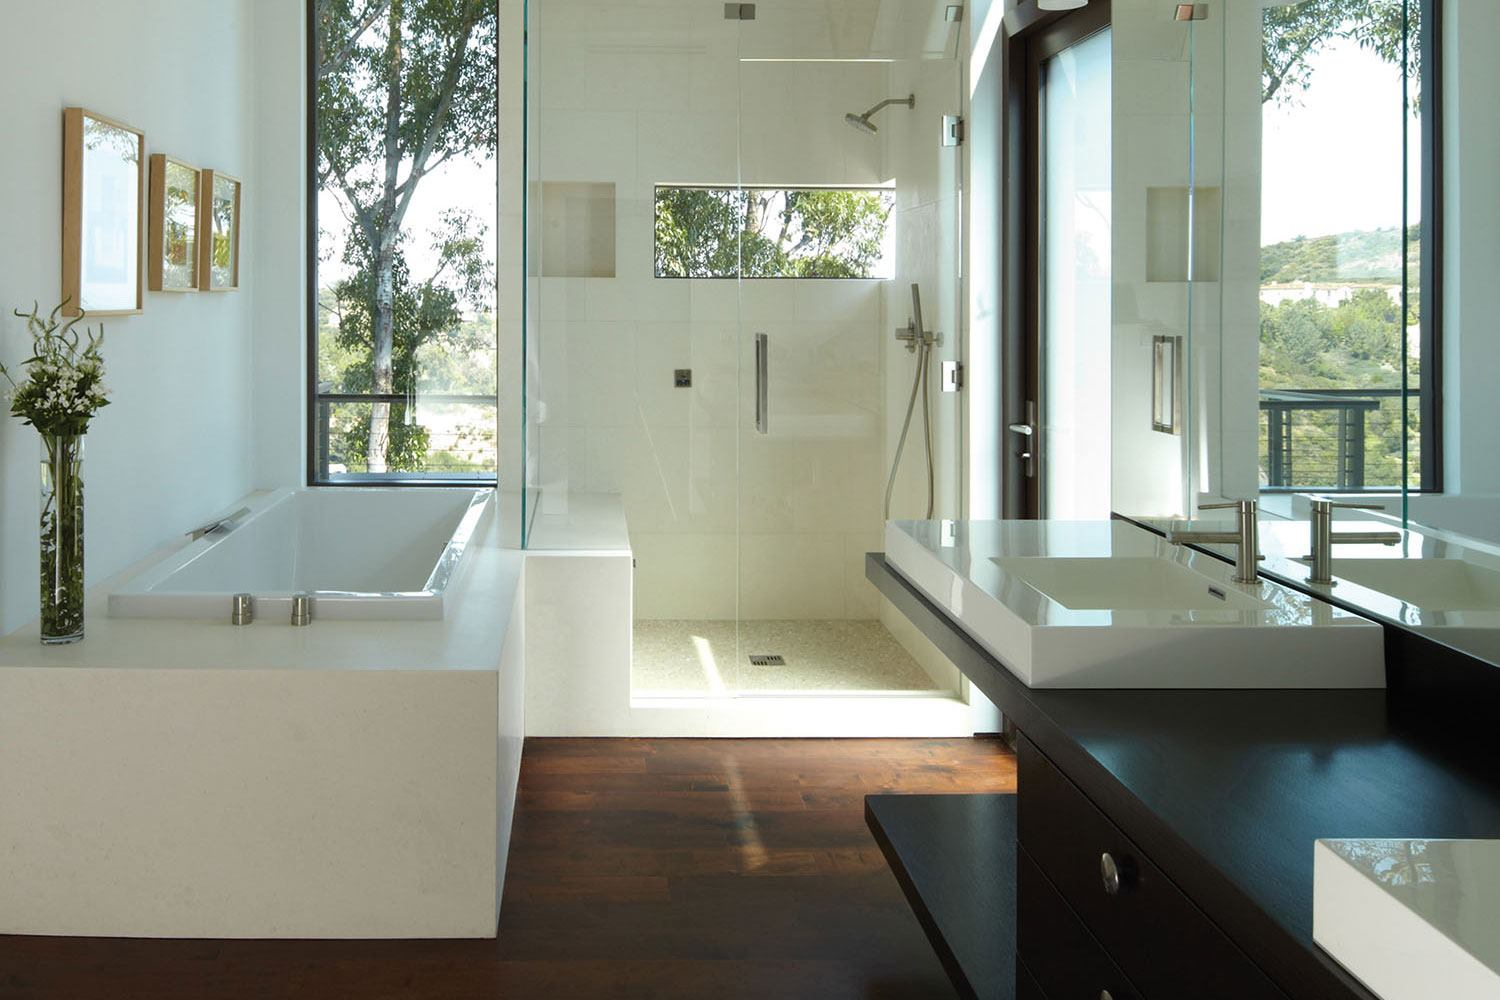 Fliesen Boden Kalt A Southern California Bath Delivers A Peak Experience At